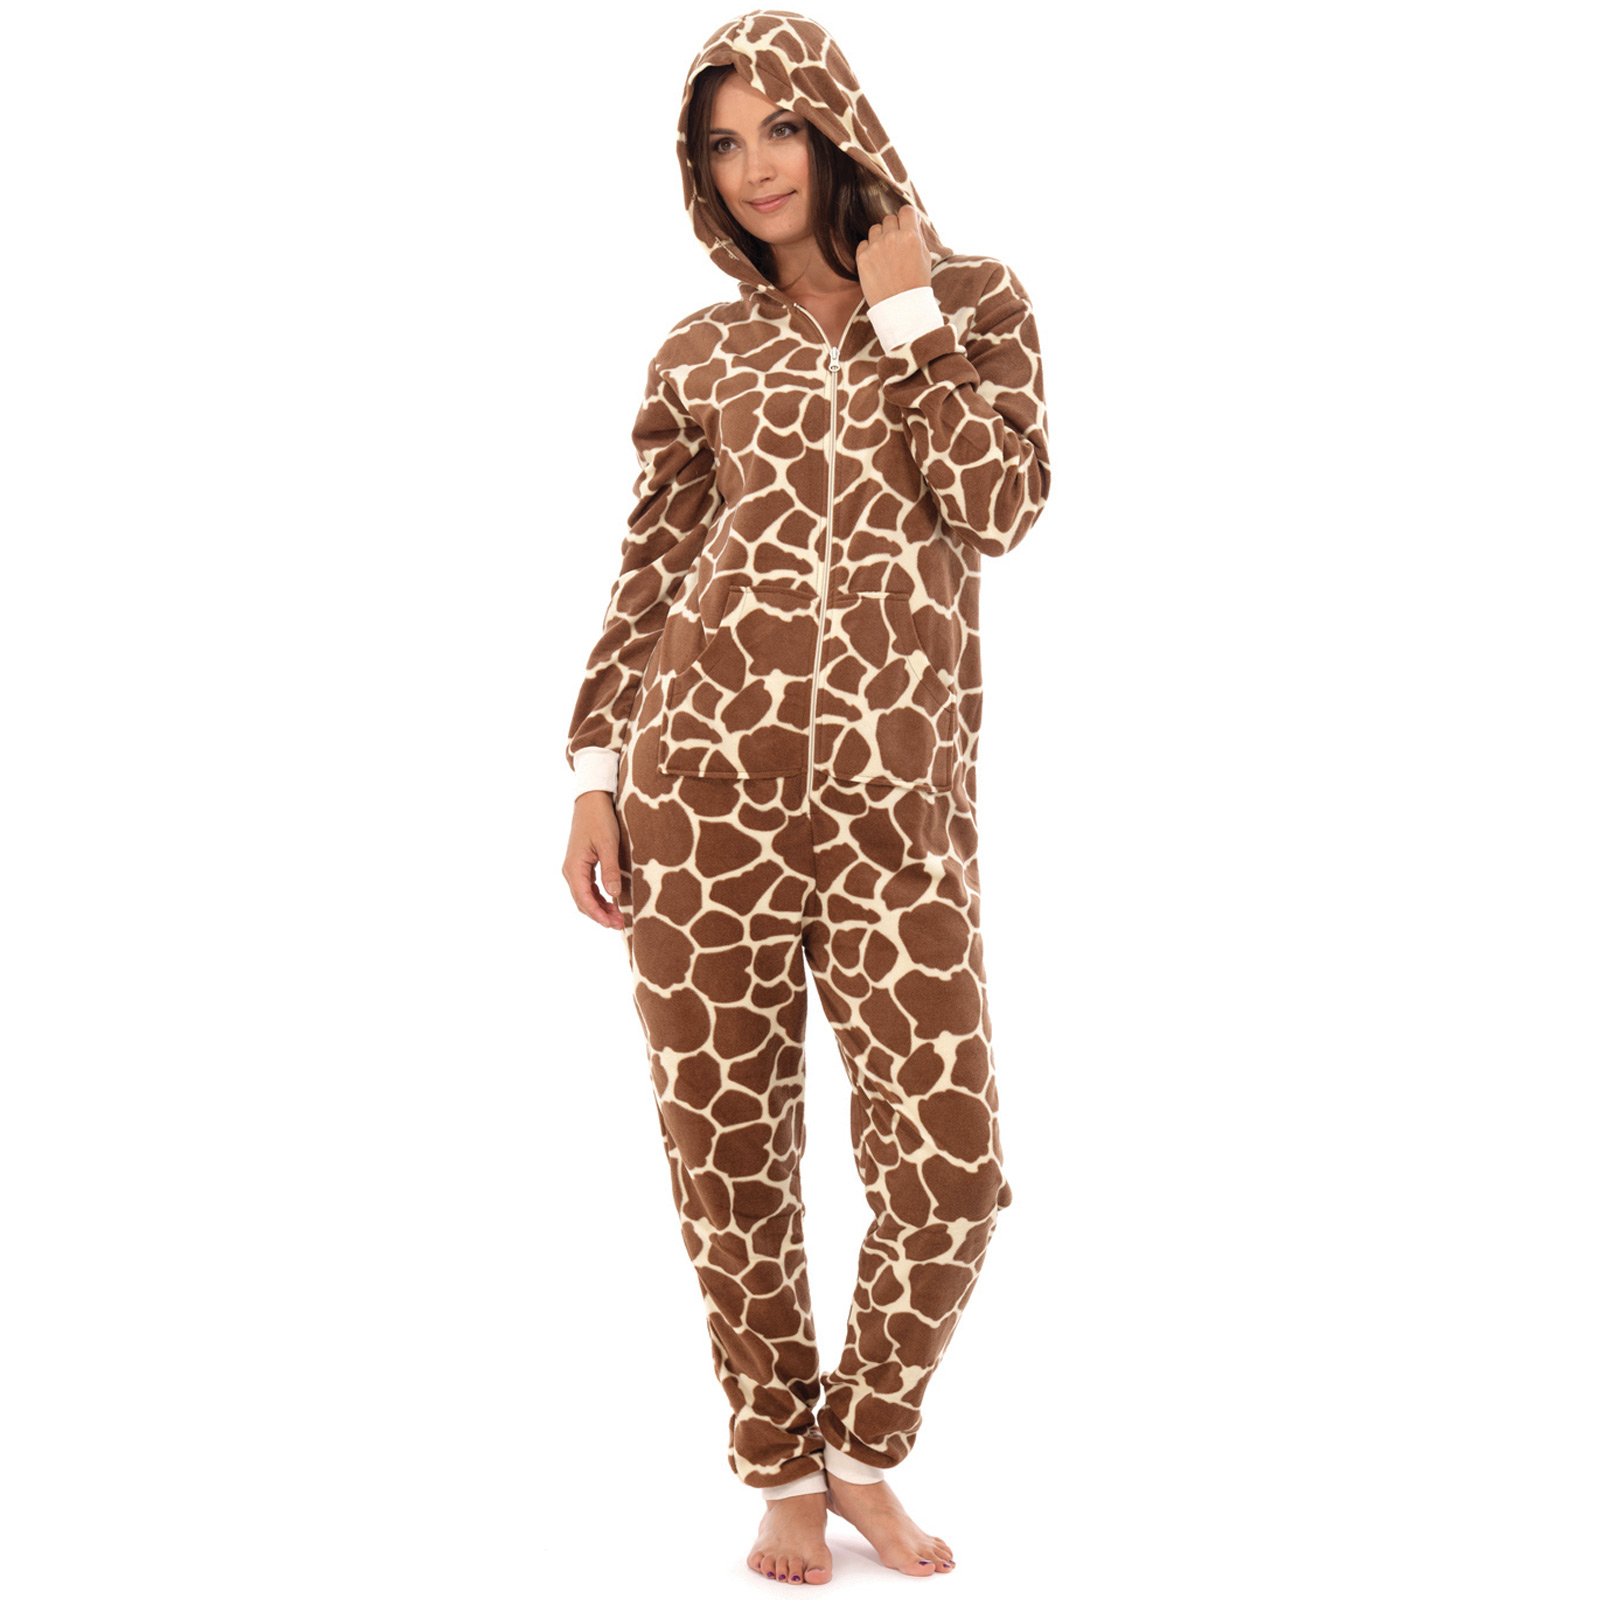 f29319ee0e Our extensive collection of Giraffe Pajamas in a wide variety of styles  allow you to wear